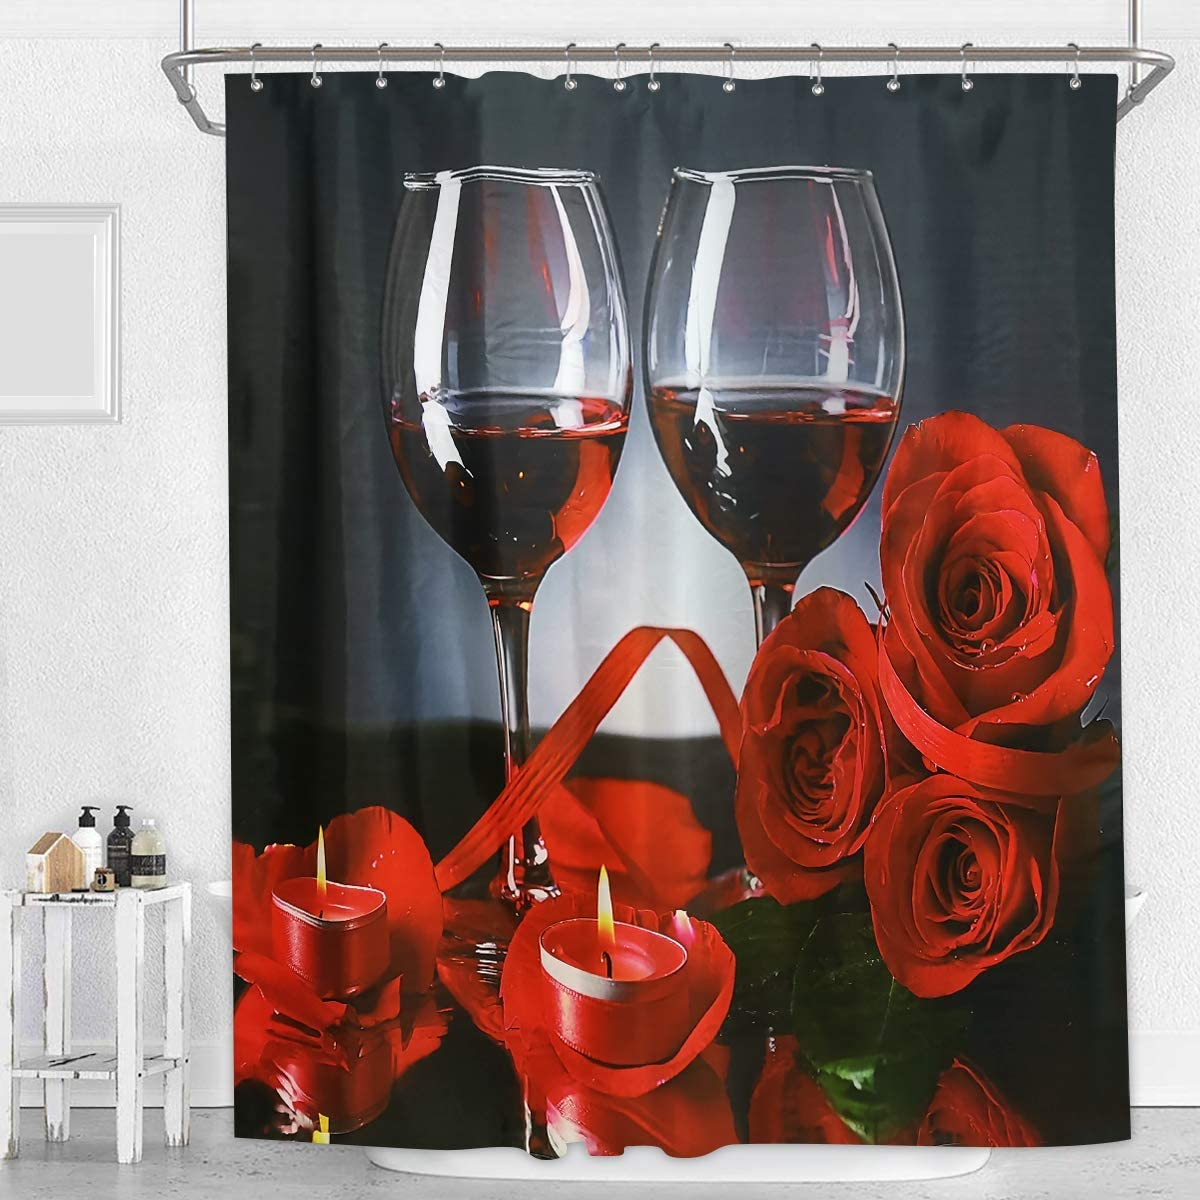 Flame Rose Blooming Bathroom Waterproof Fabric Shower Curtain Mat 12Hook Set 72/""